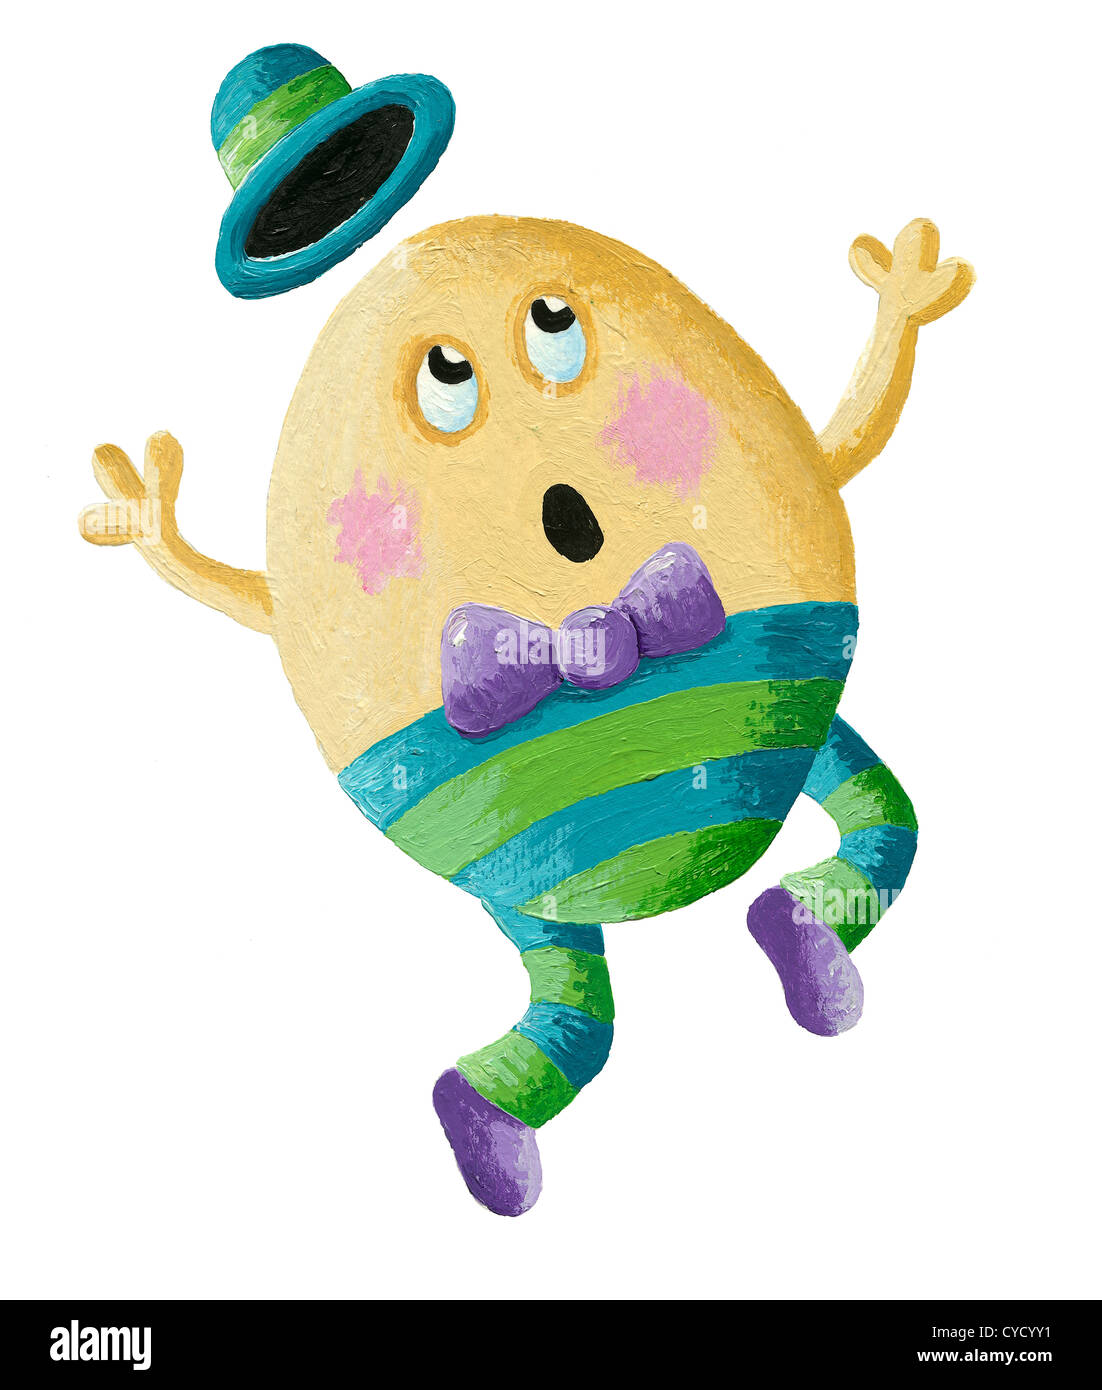 Acrylic illustration of Humpty Dumpty - Stock Image